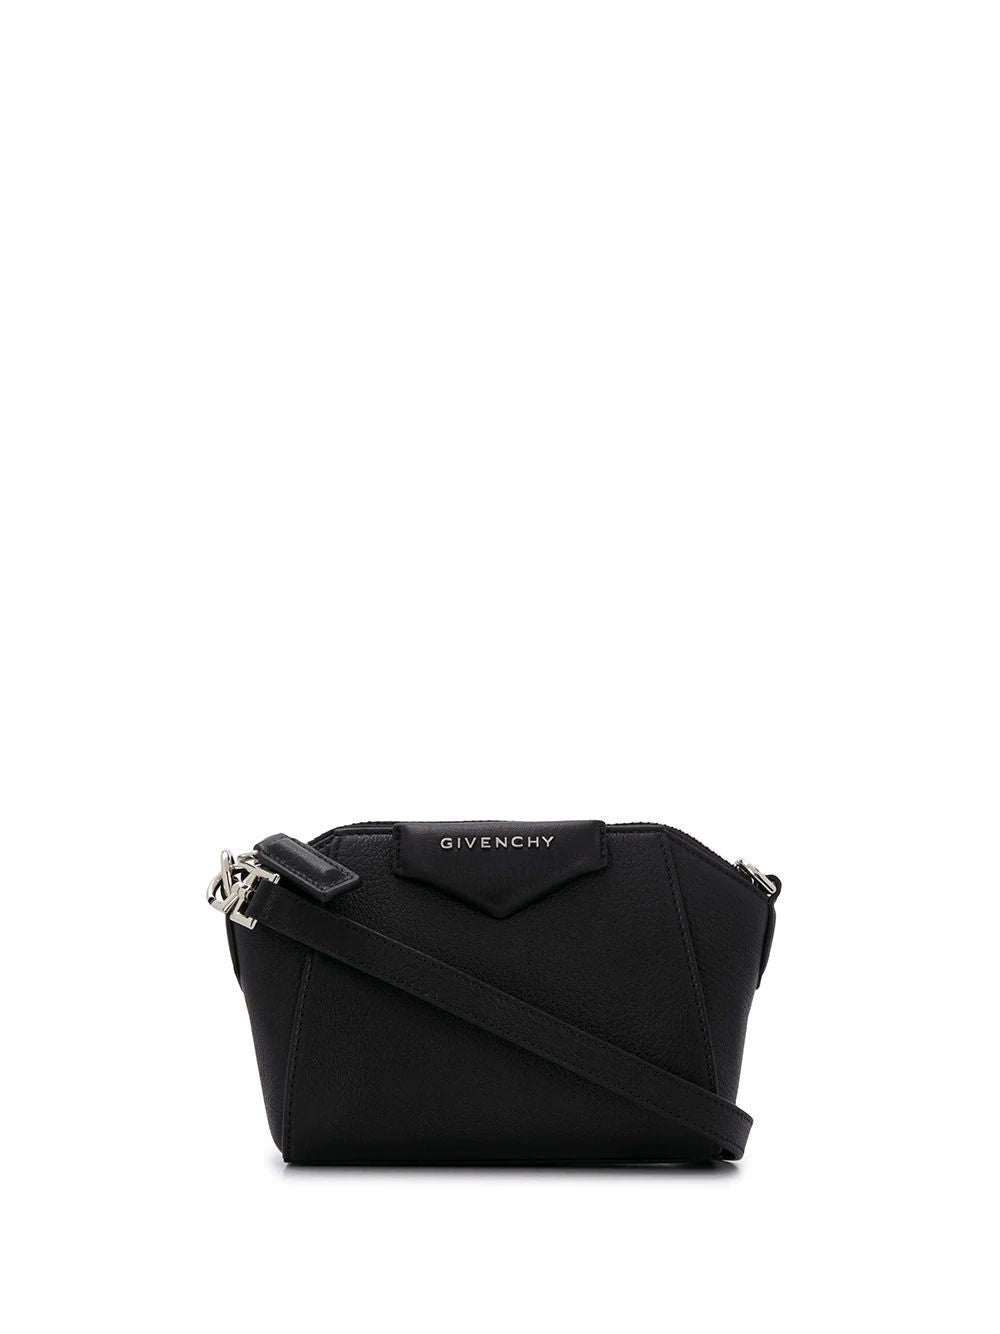 GIVENCHY Antigona mini crossbody bag